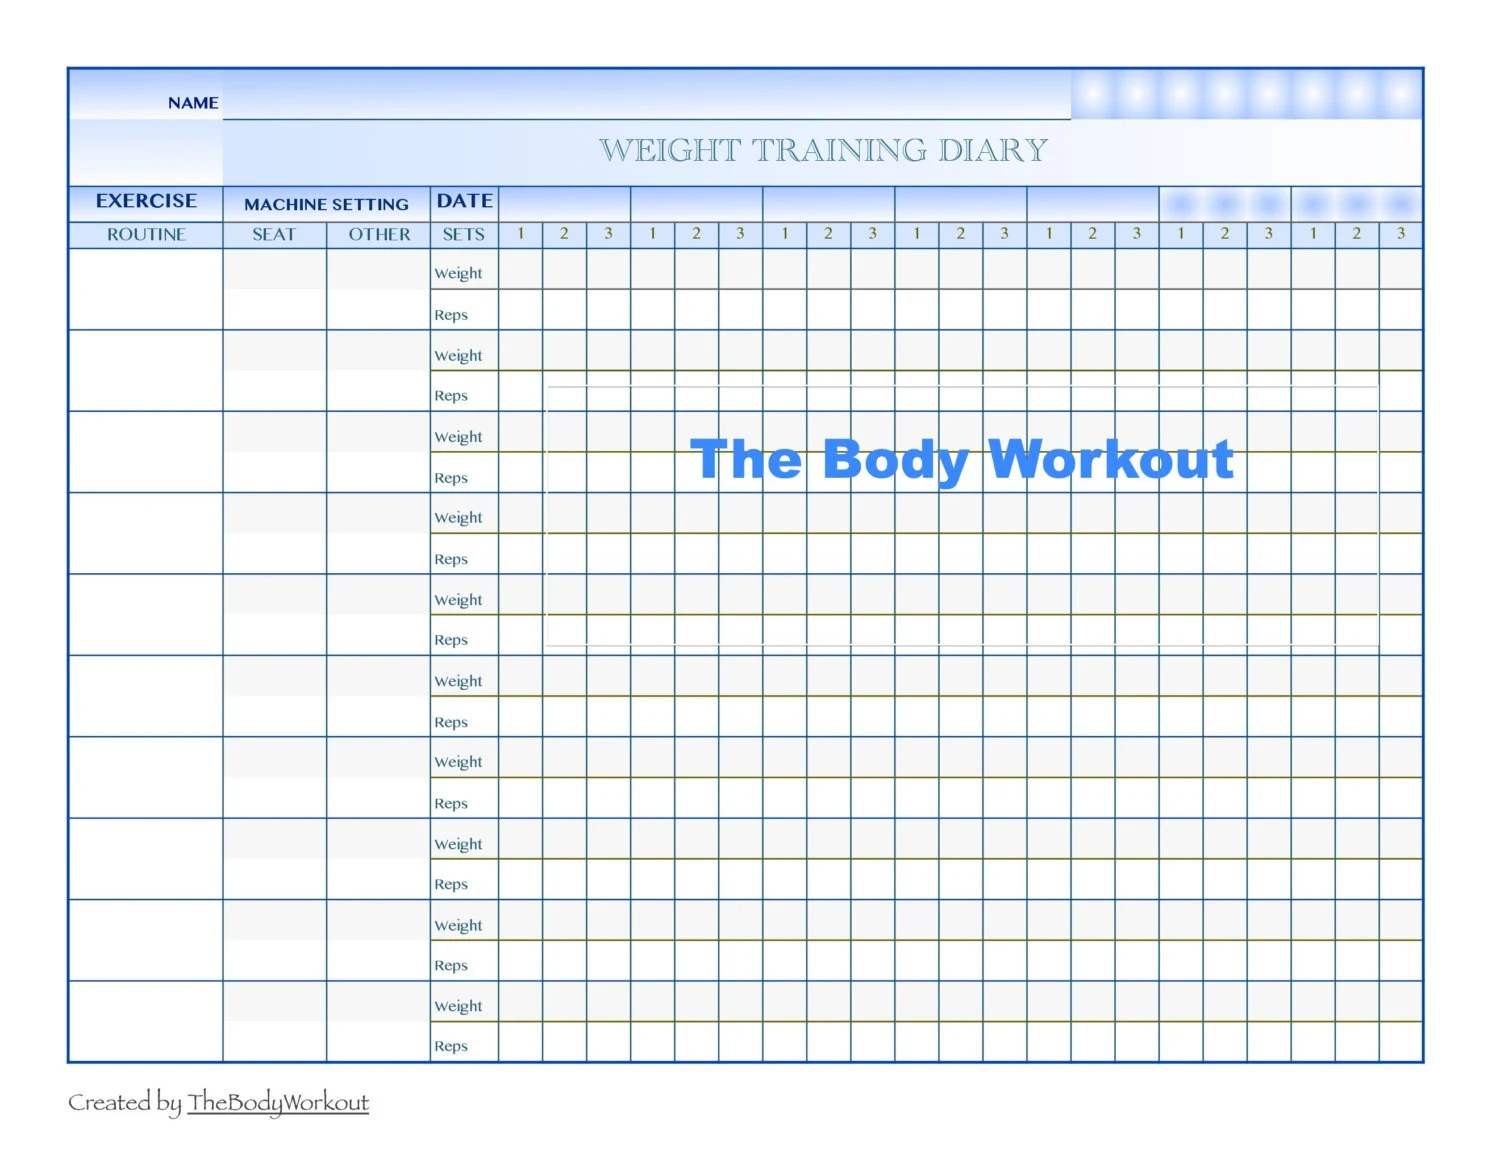 Workout Log Health Planner Weight Training Log Fitness